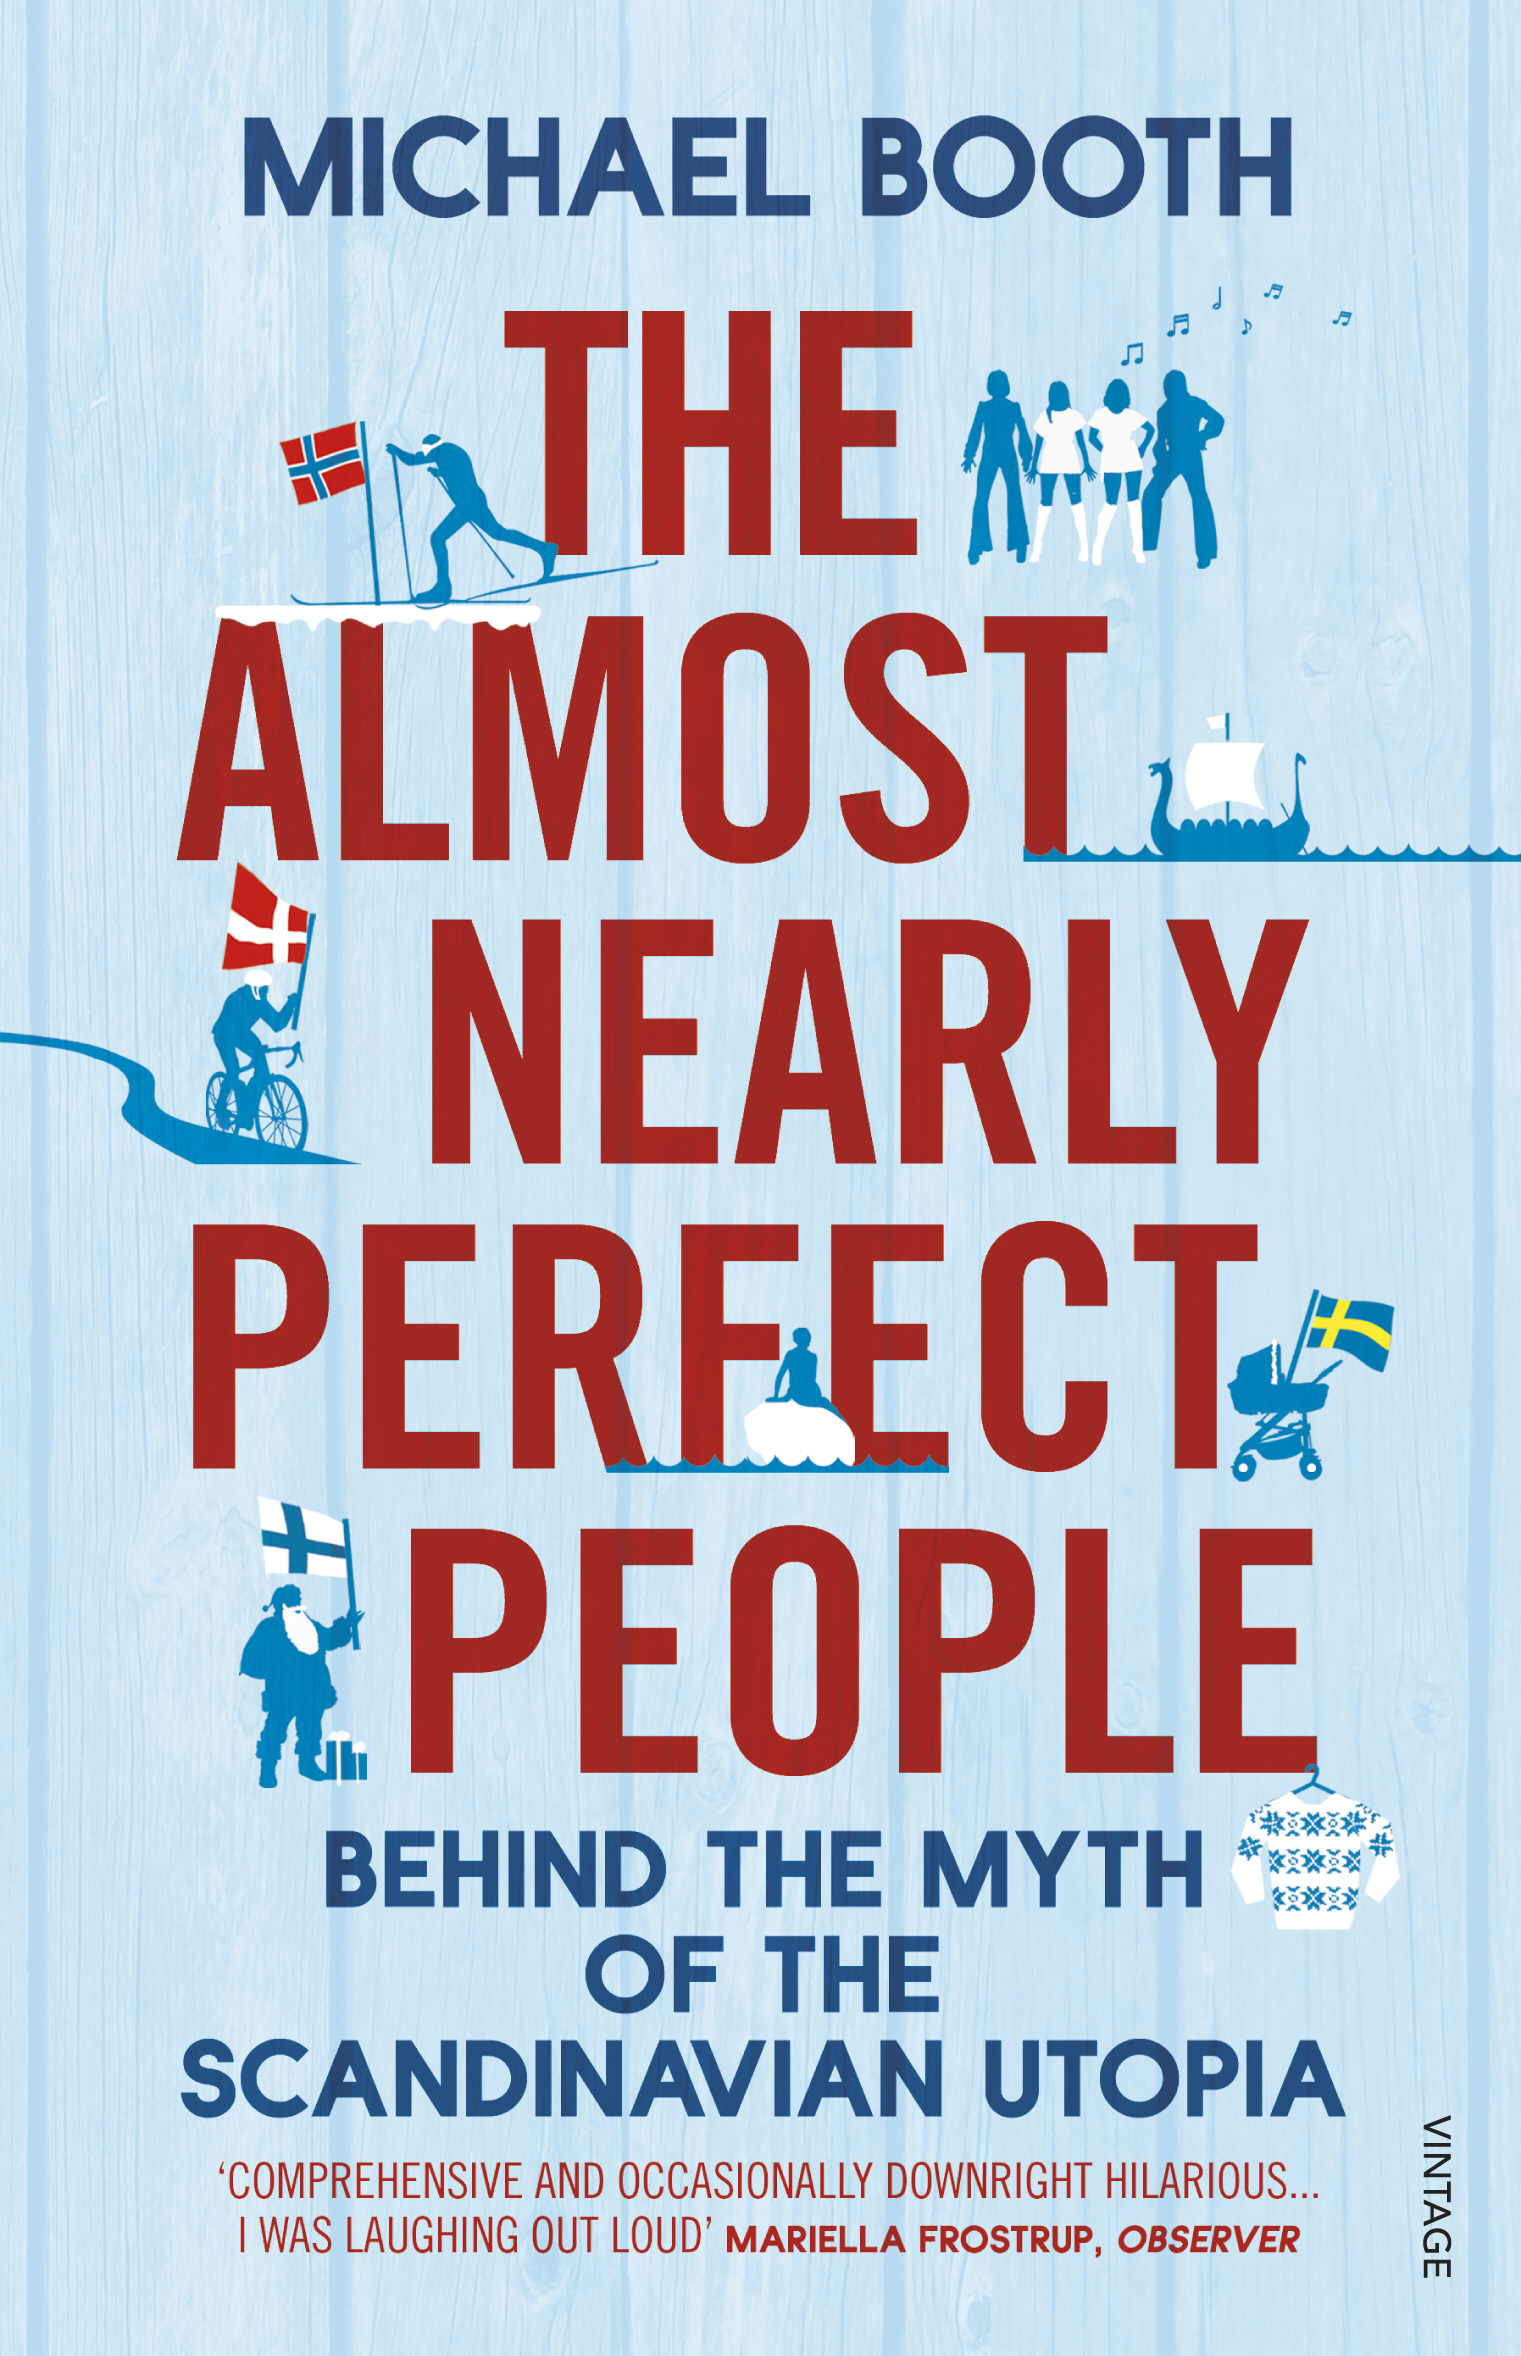 The Almost Nearly Perfect People Behind the Myth of the Scandinavian Utopia